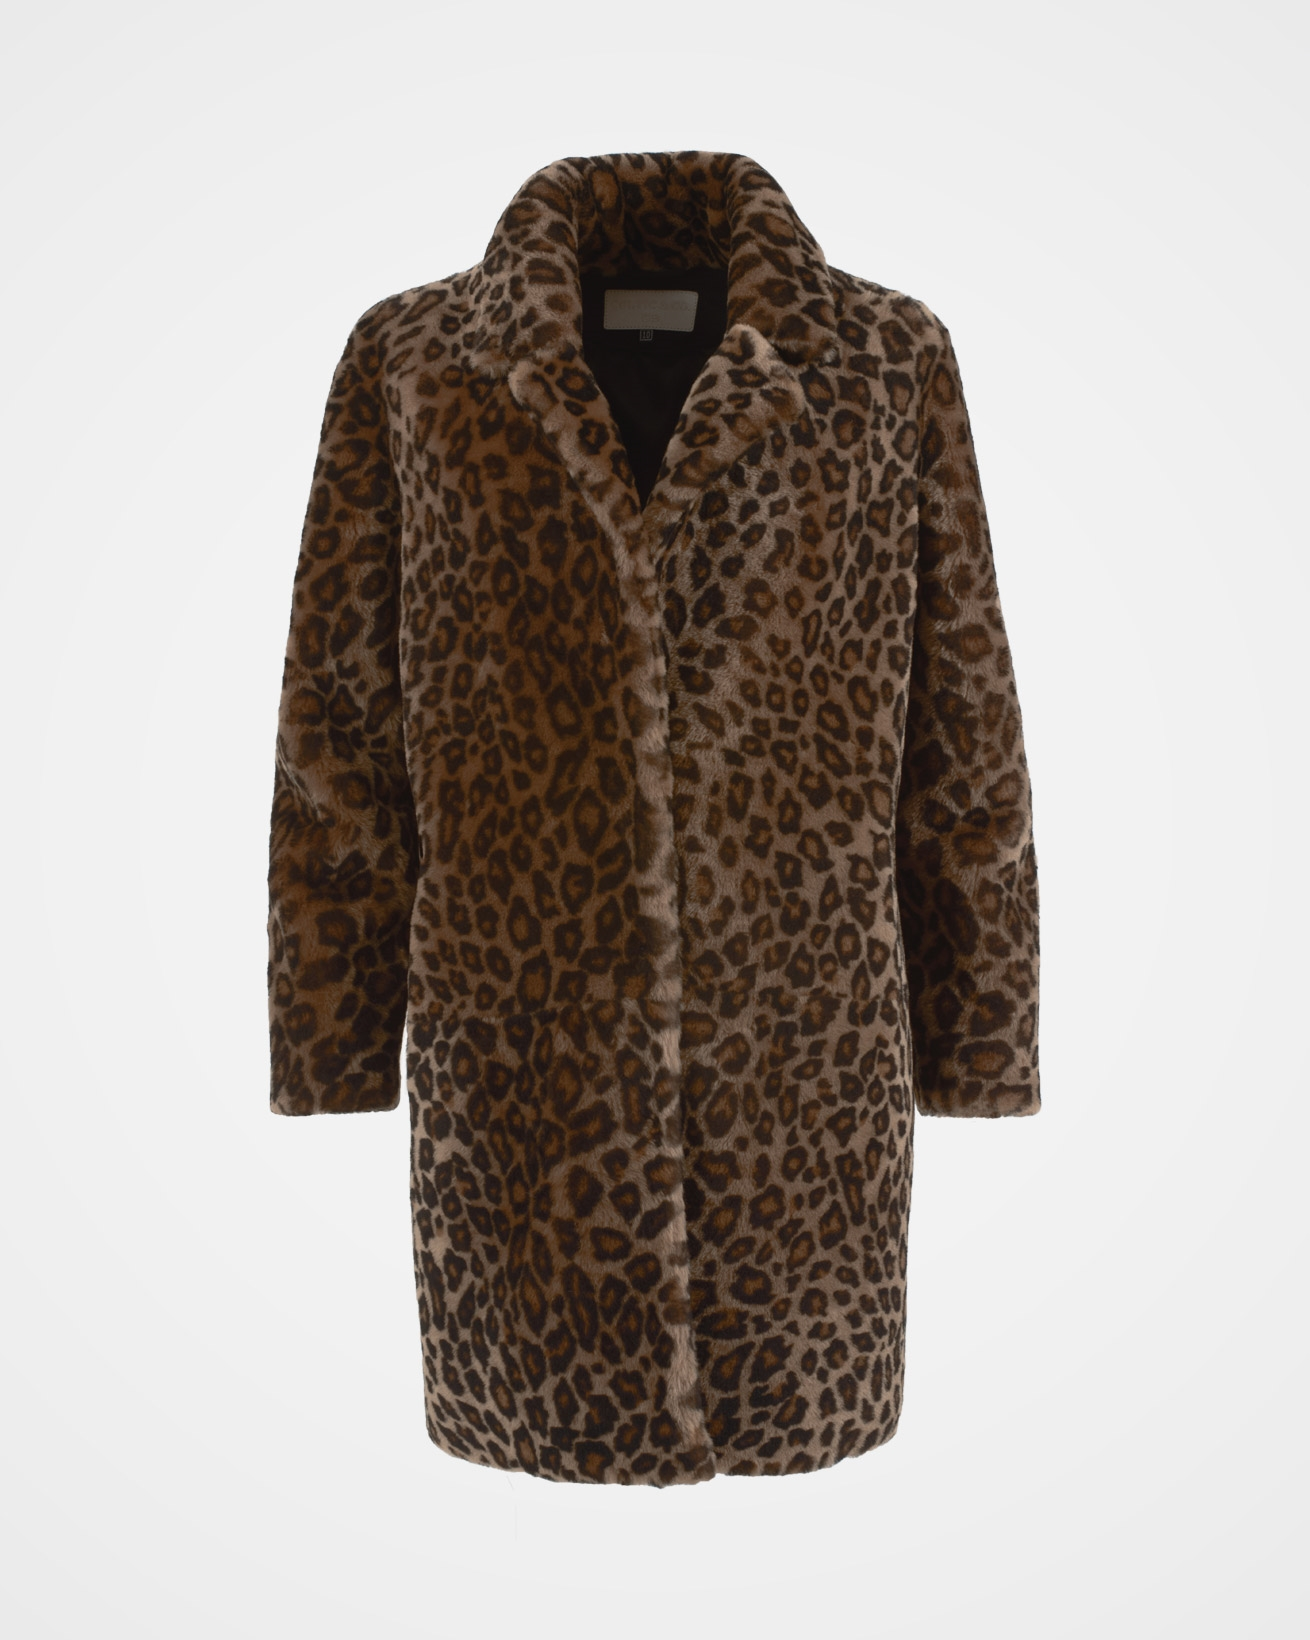 7685_leopard-print-coat_front_newcolour.jpg